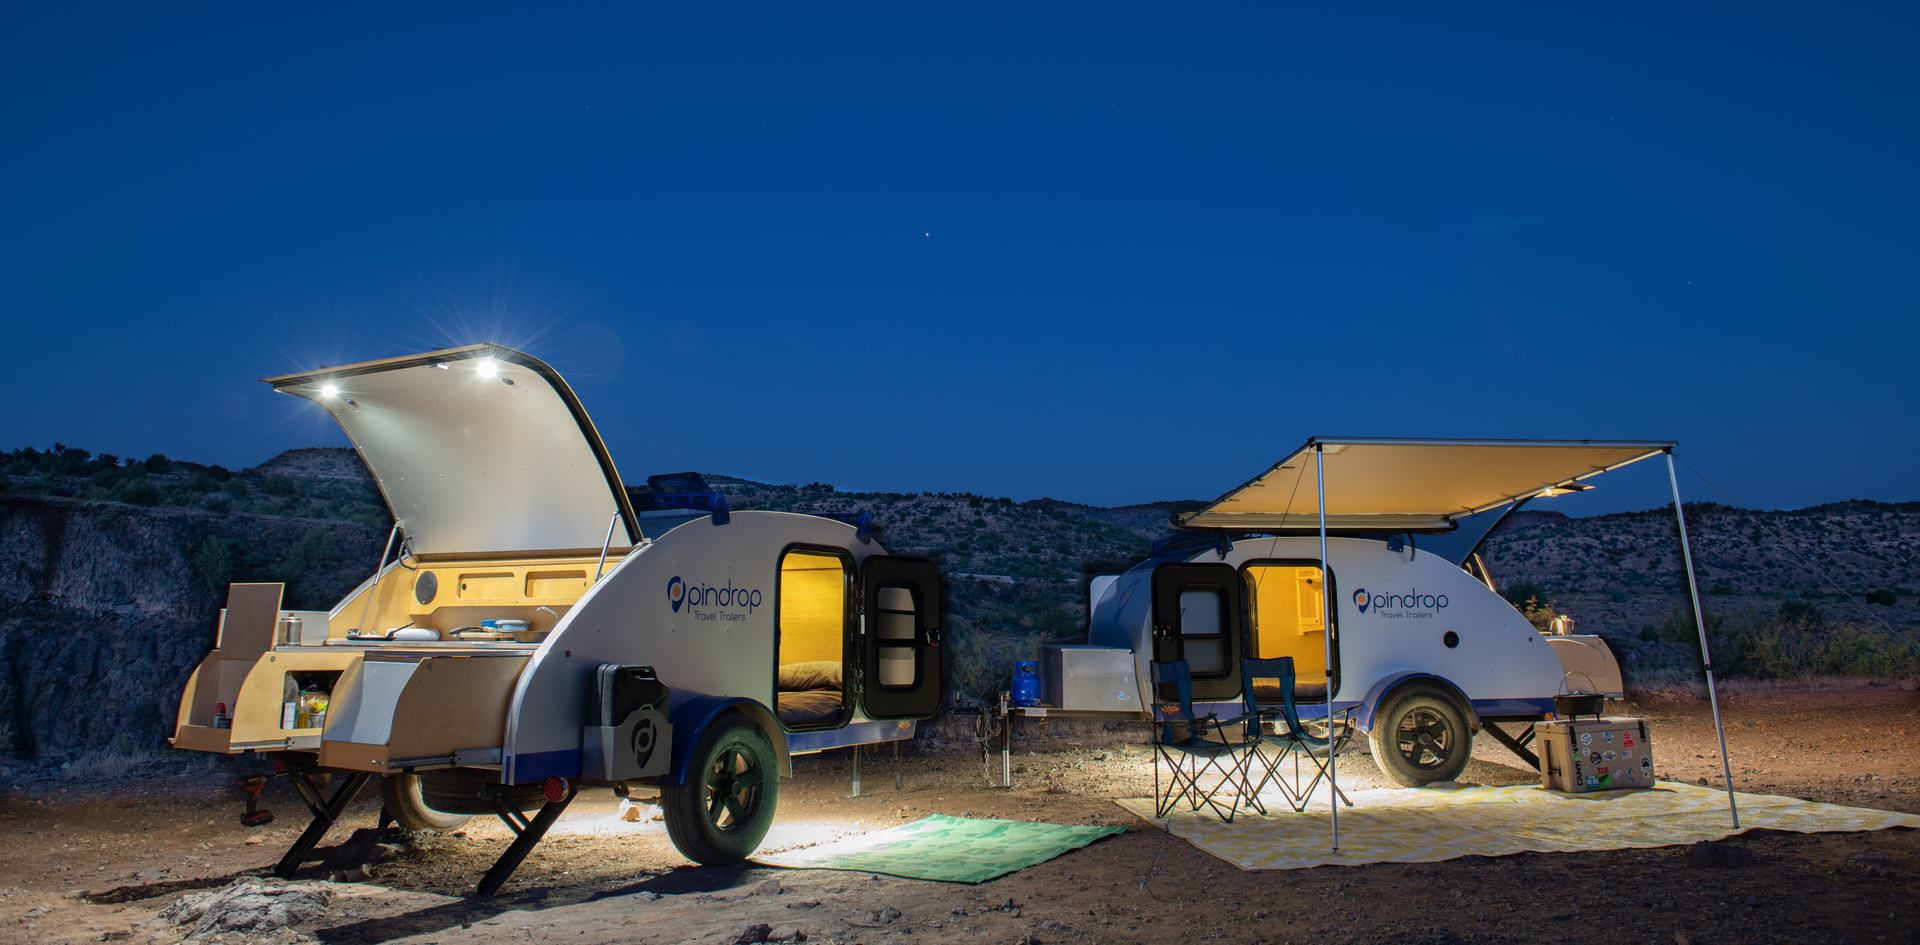 Pin Drop Travel Trailers lit up at night